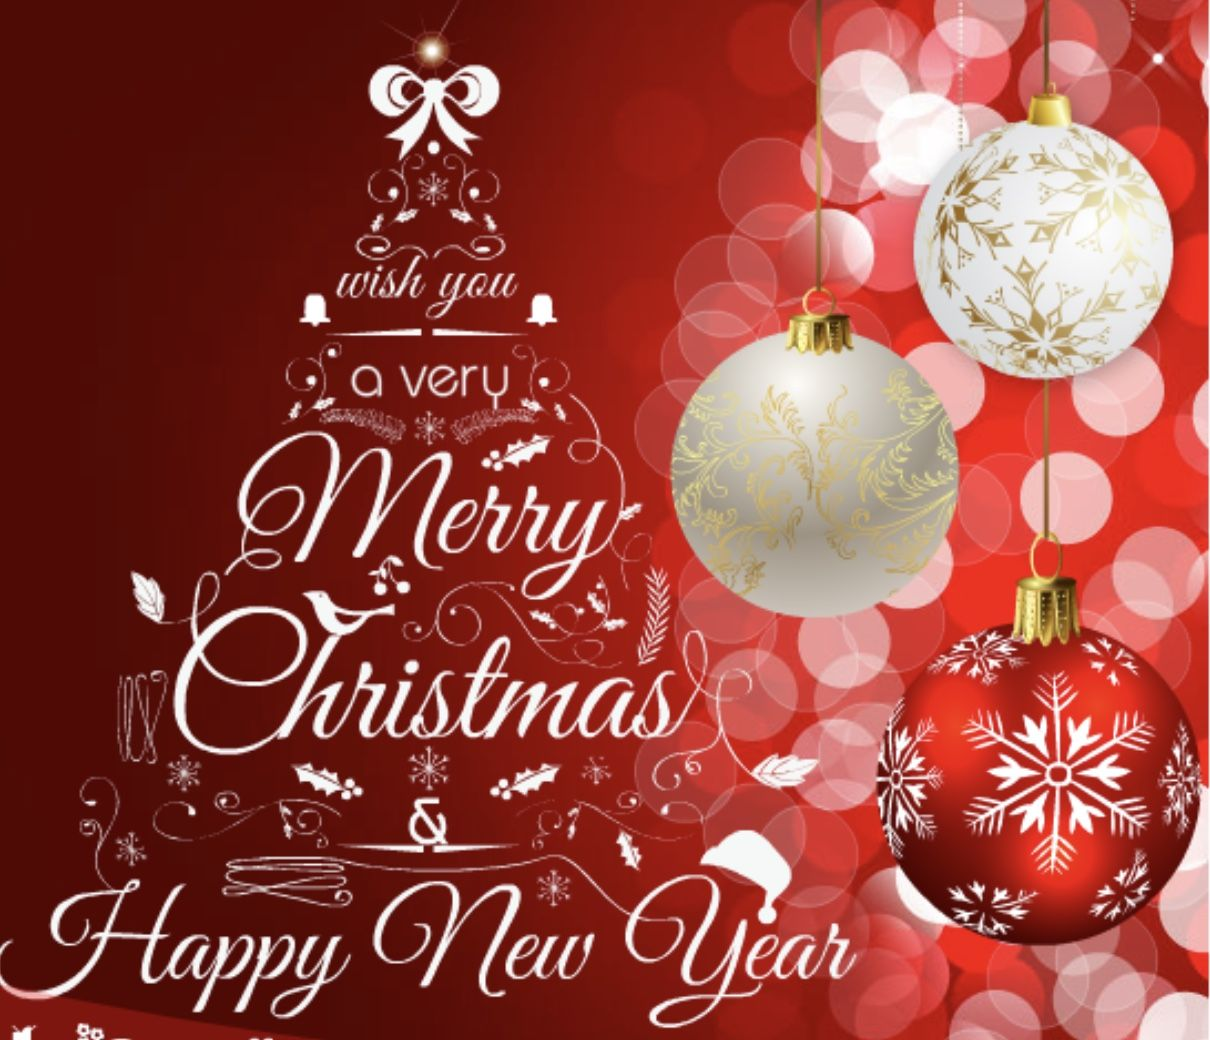 To All Our Family And Friends Best Regards Sandy Mehra Vp Sales And